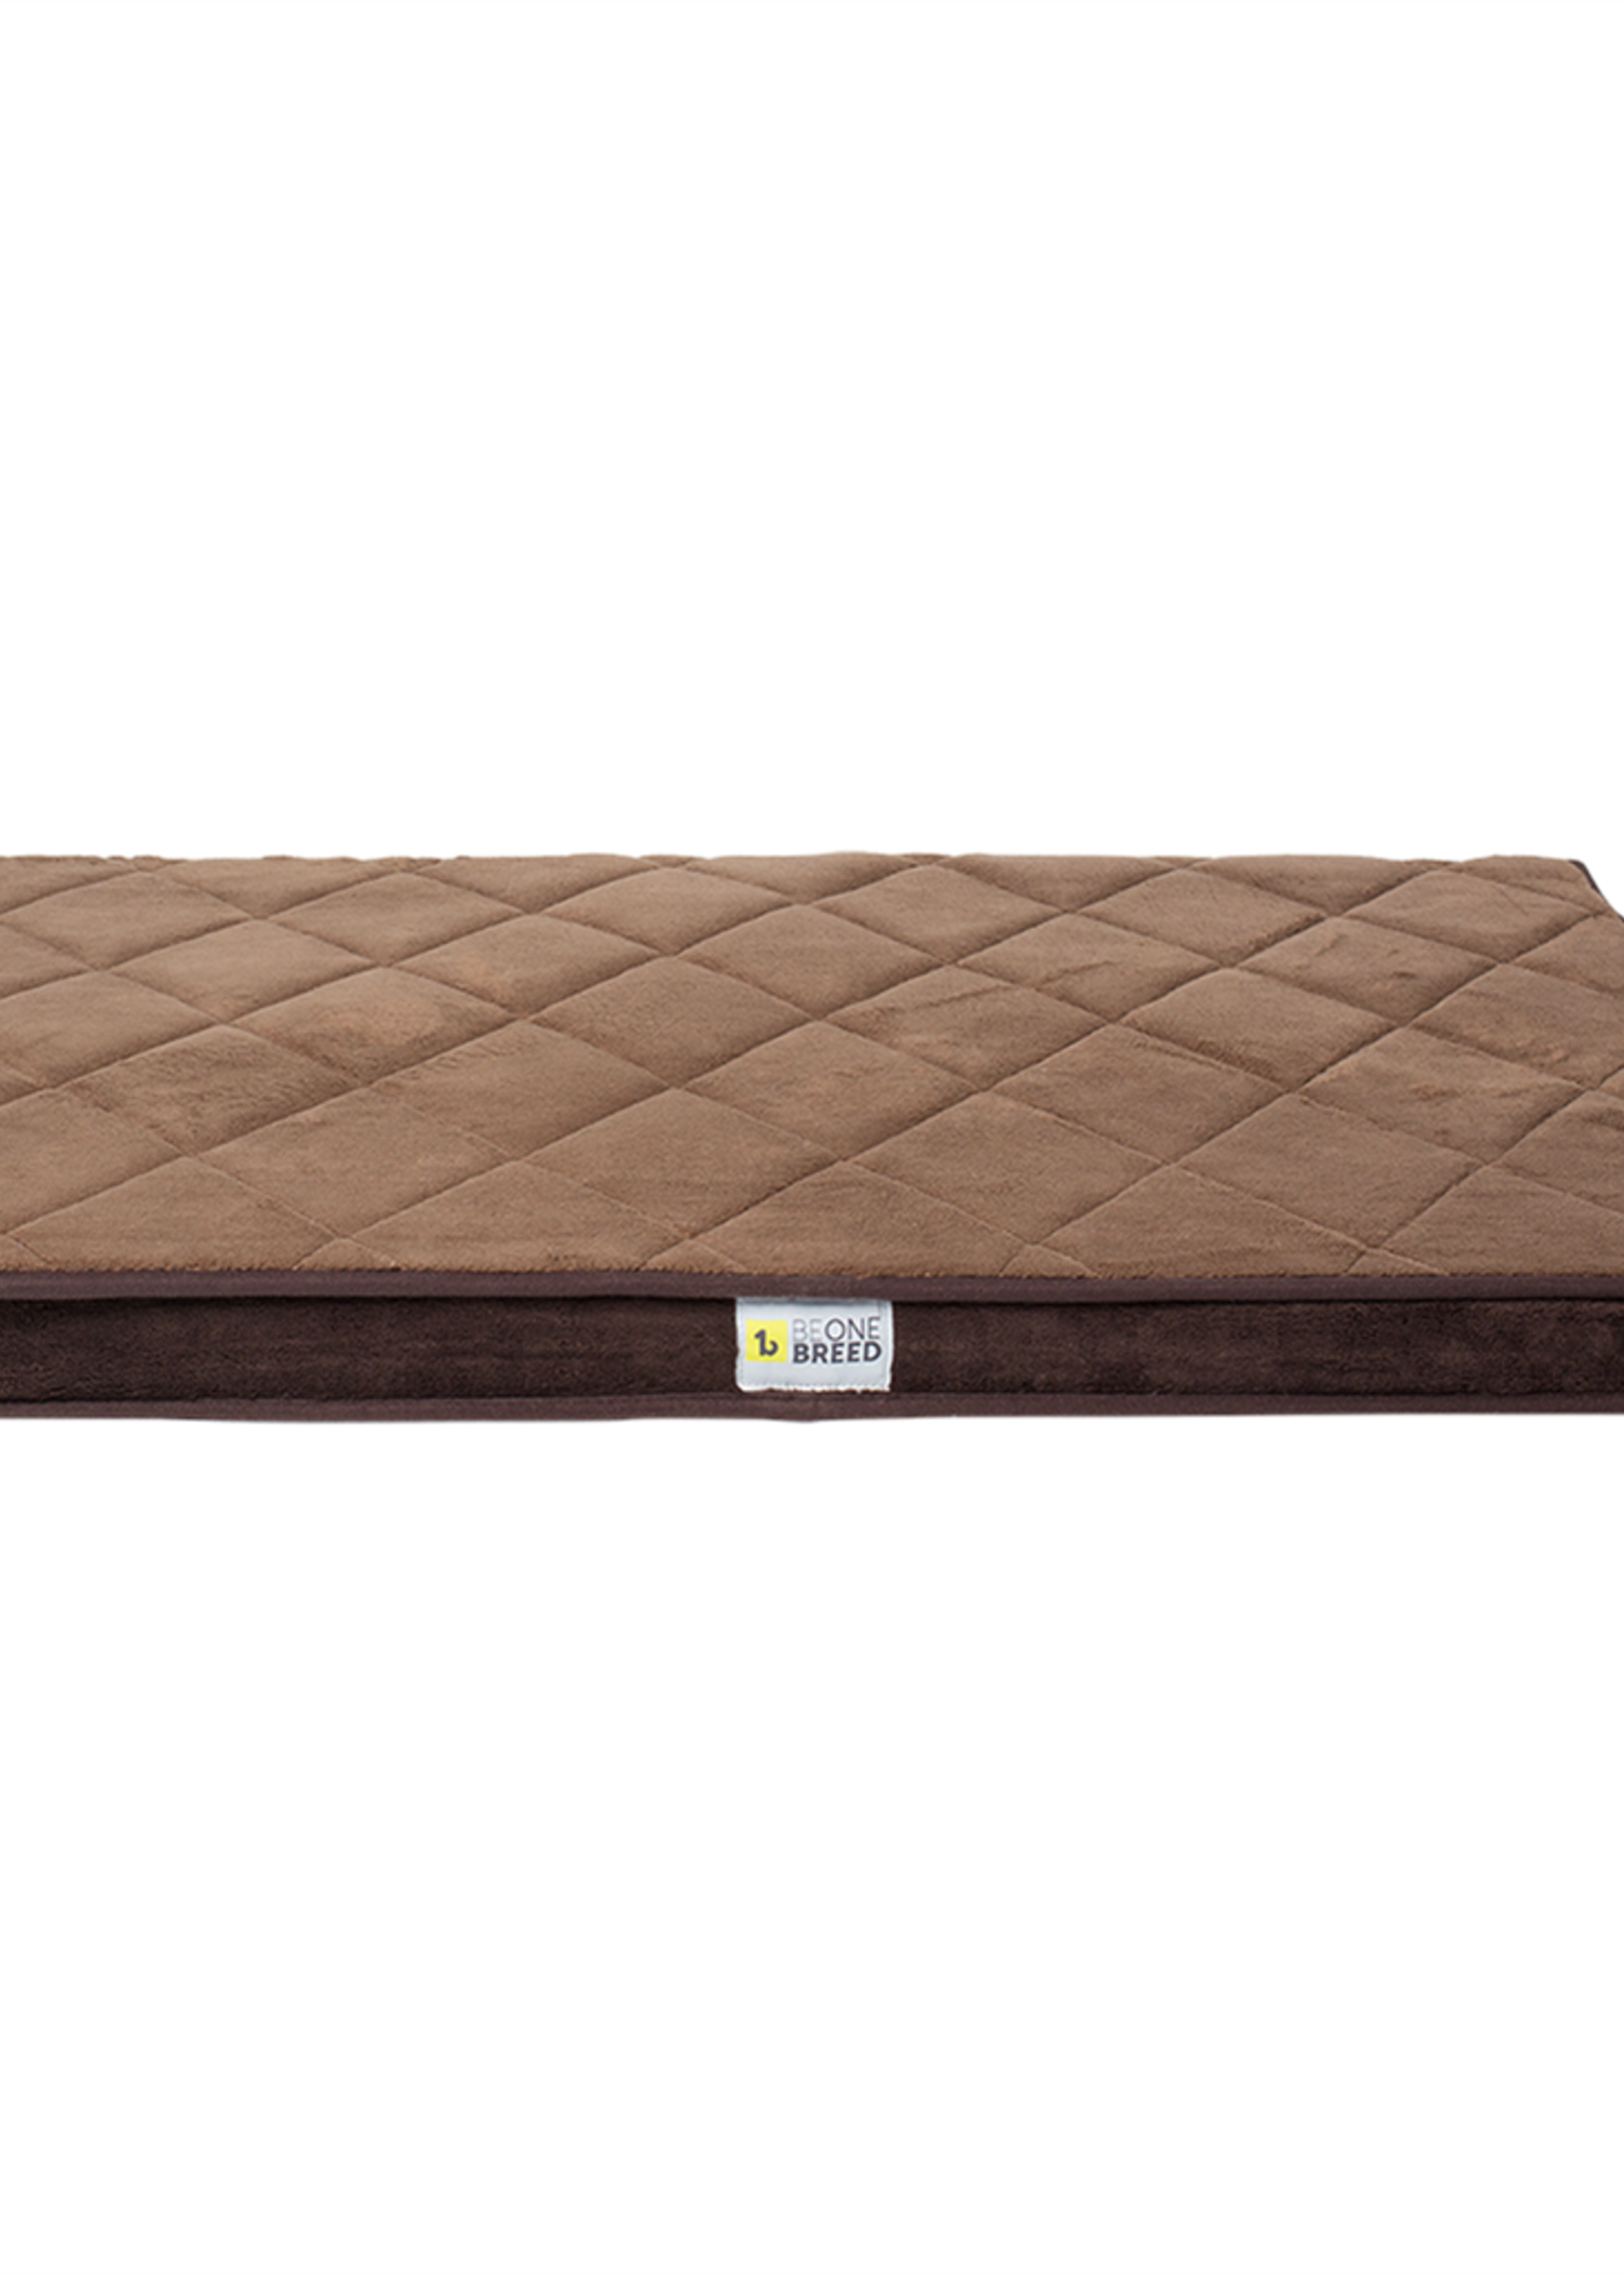 Be One Breed Diamond Bed Brown Small 17x23